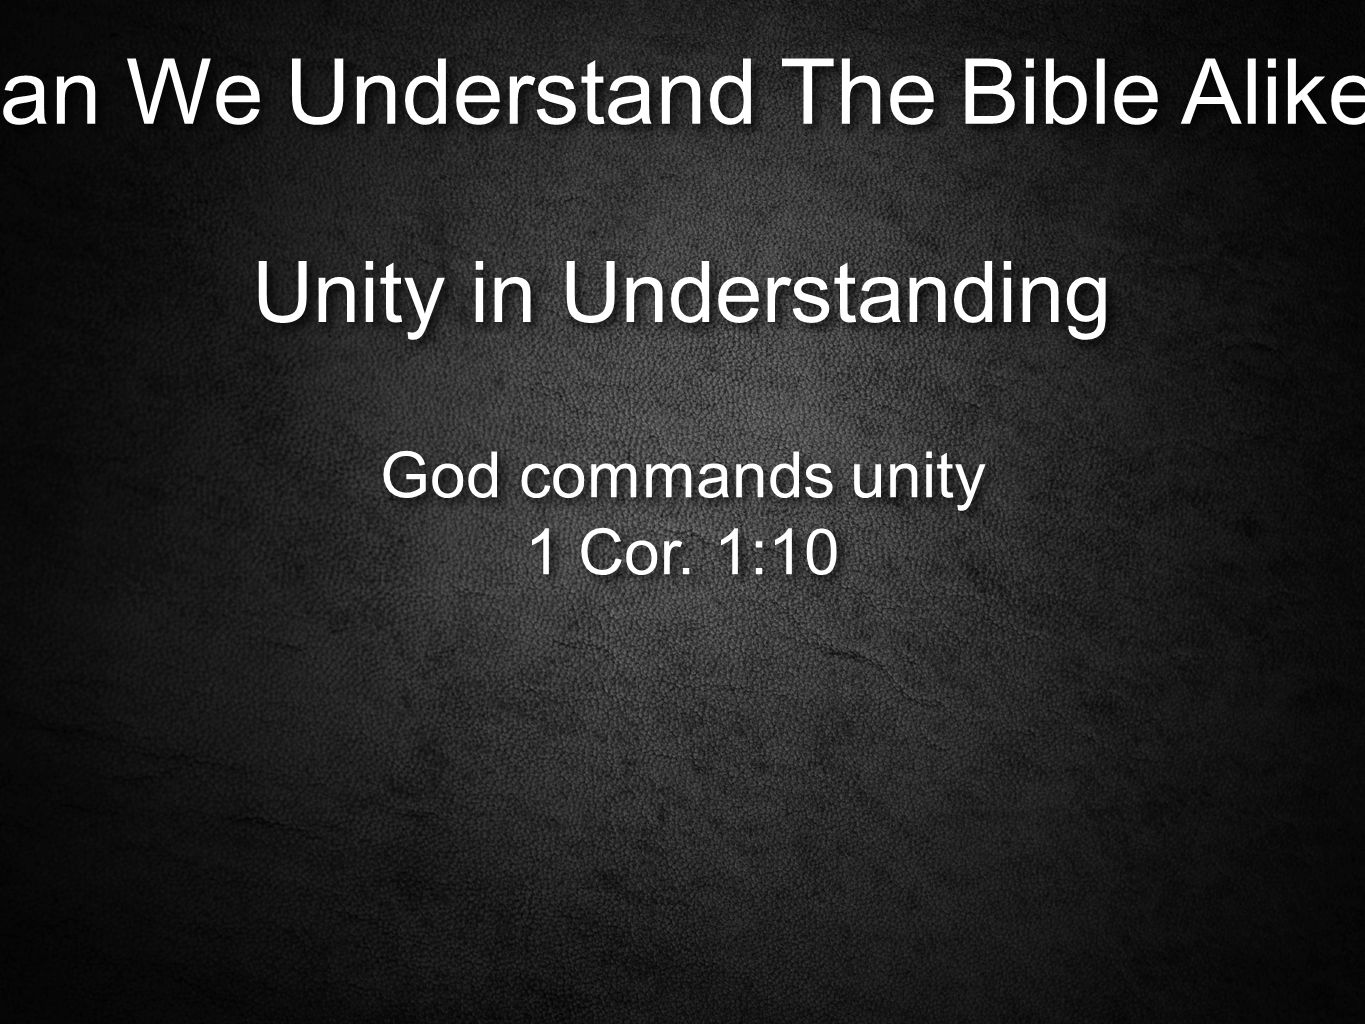 Can We Understand The Bible Alike. Unity in Understanding God commands unity 1 Cor.